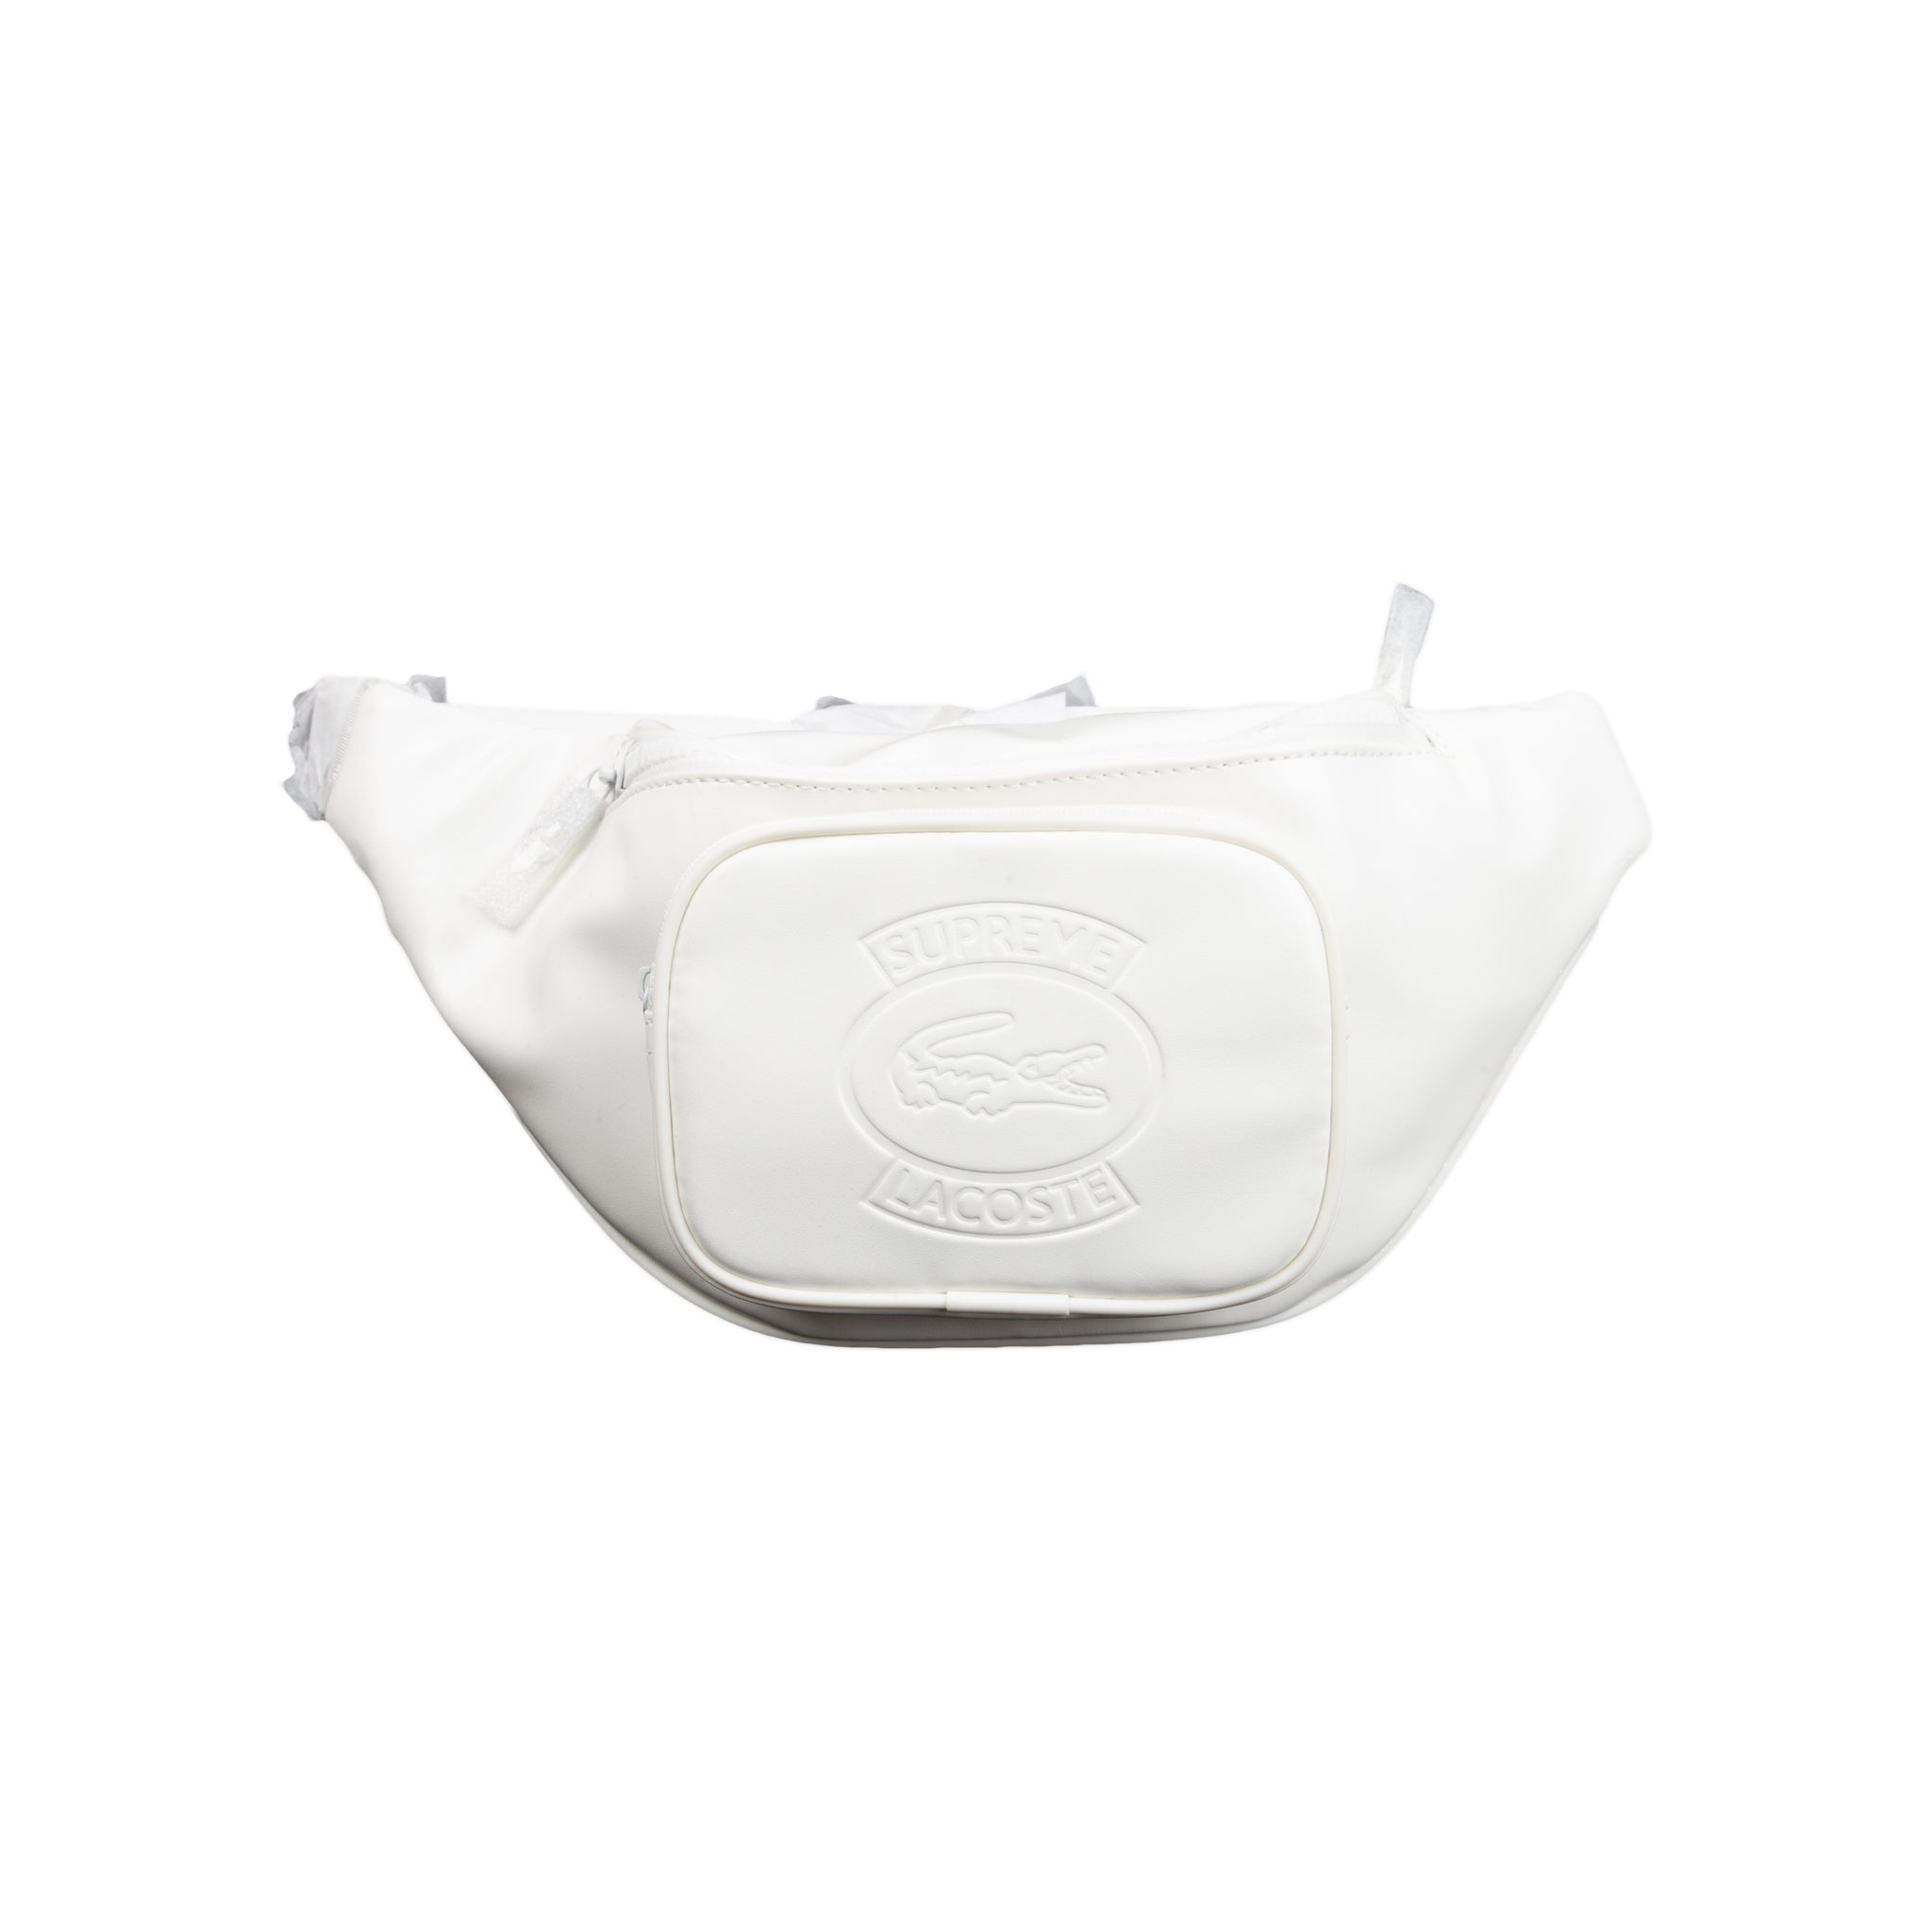 Supreme White Lacoste Waist Bag